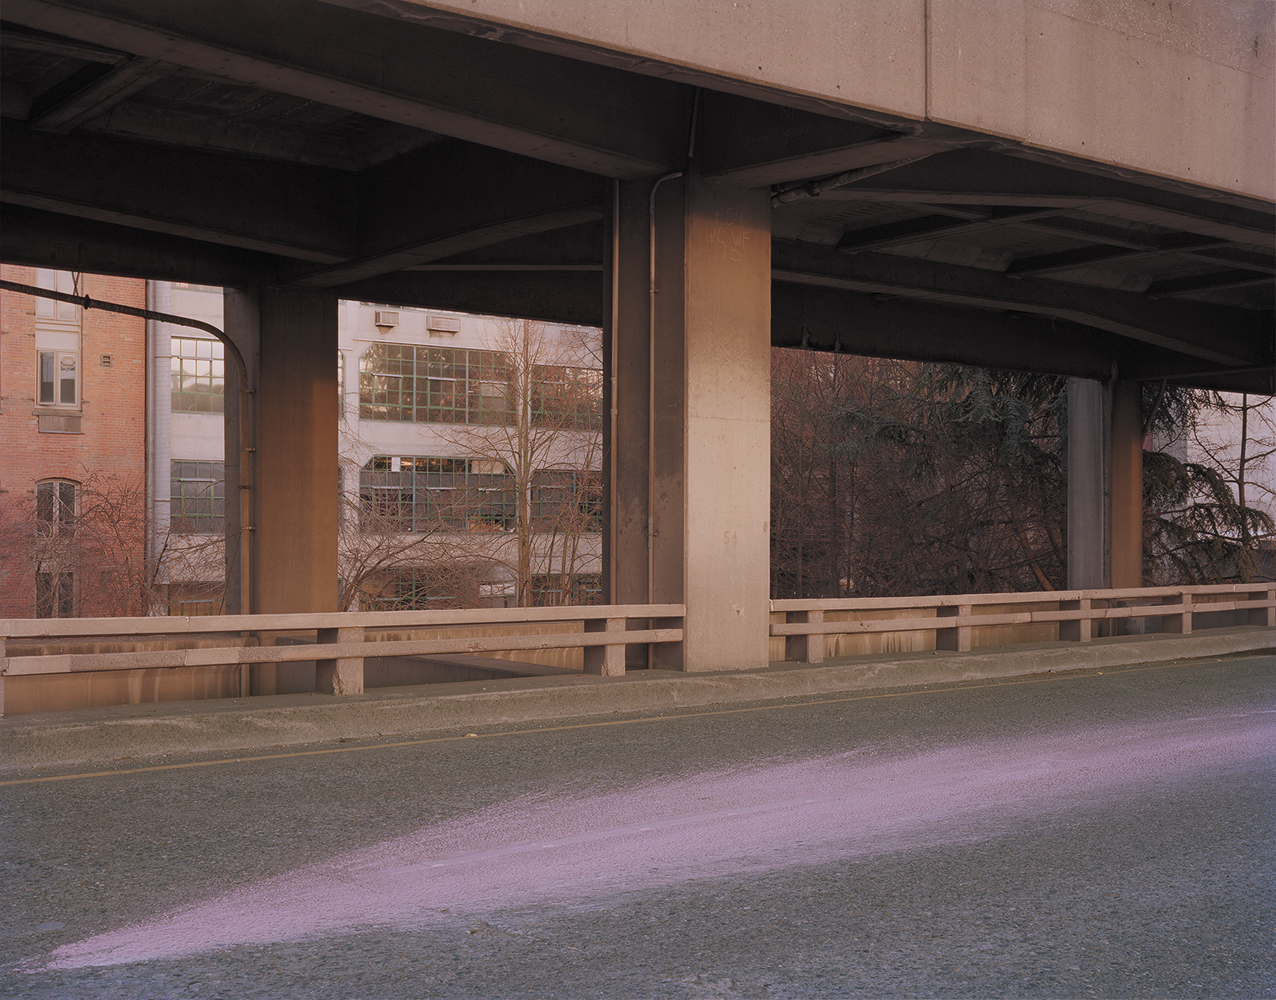 Eirik Johnson, Viaduct M, 2019